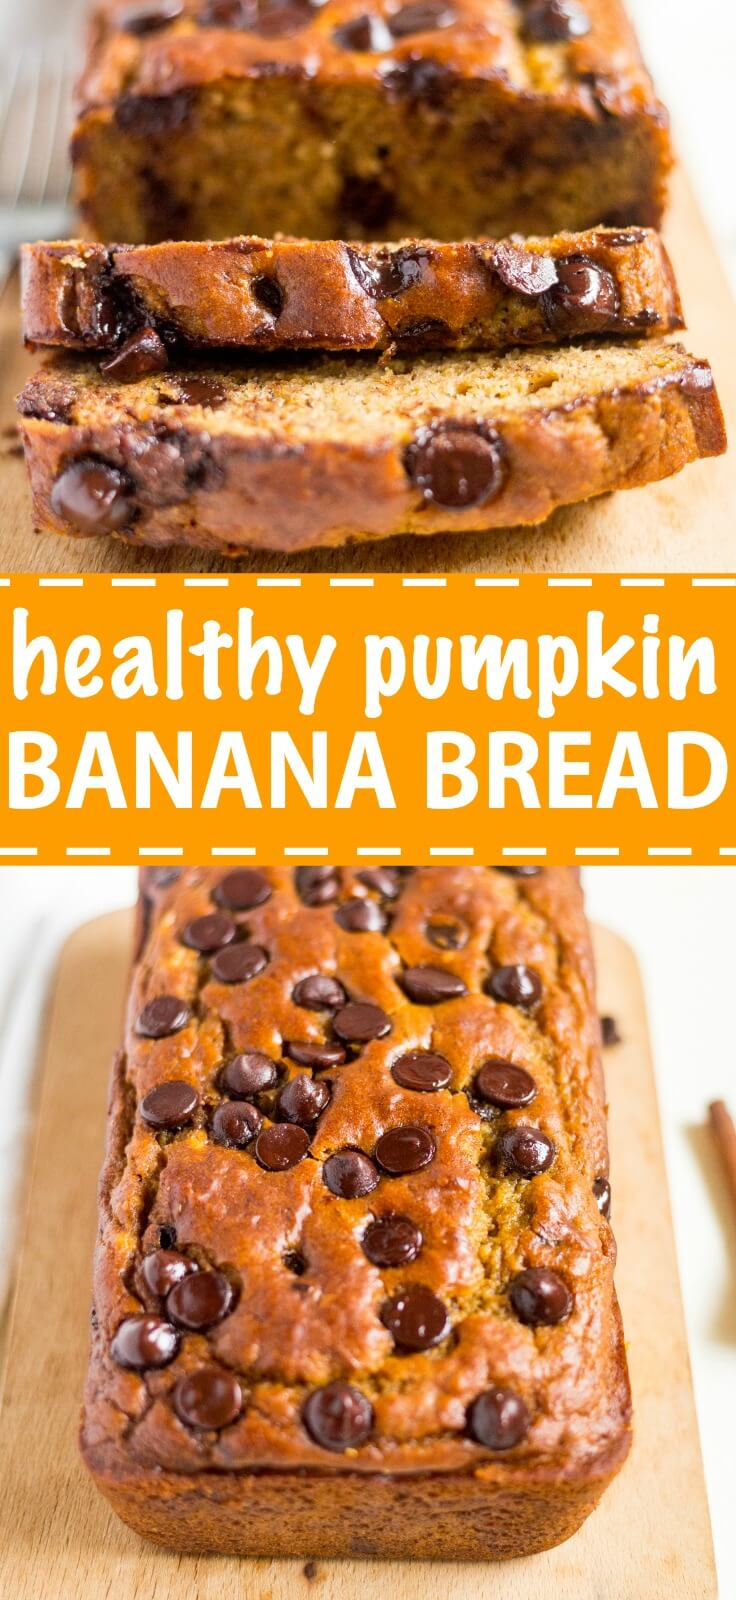 Healthy pumpkin banana bread is an easy and healthy recipe to make this fall! It's made with canned pumpkin, greek yogurt, coconut oil and optional chocolate chips for a healthy, but delicious pumpkin banana bread recipe.